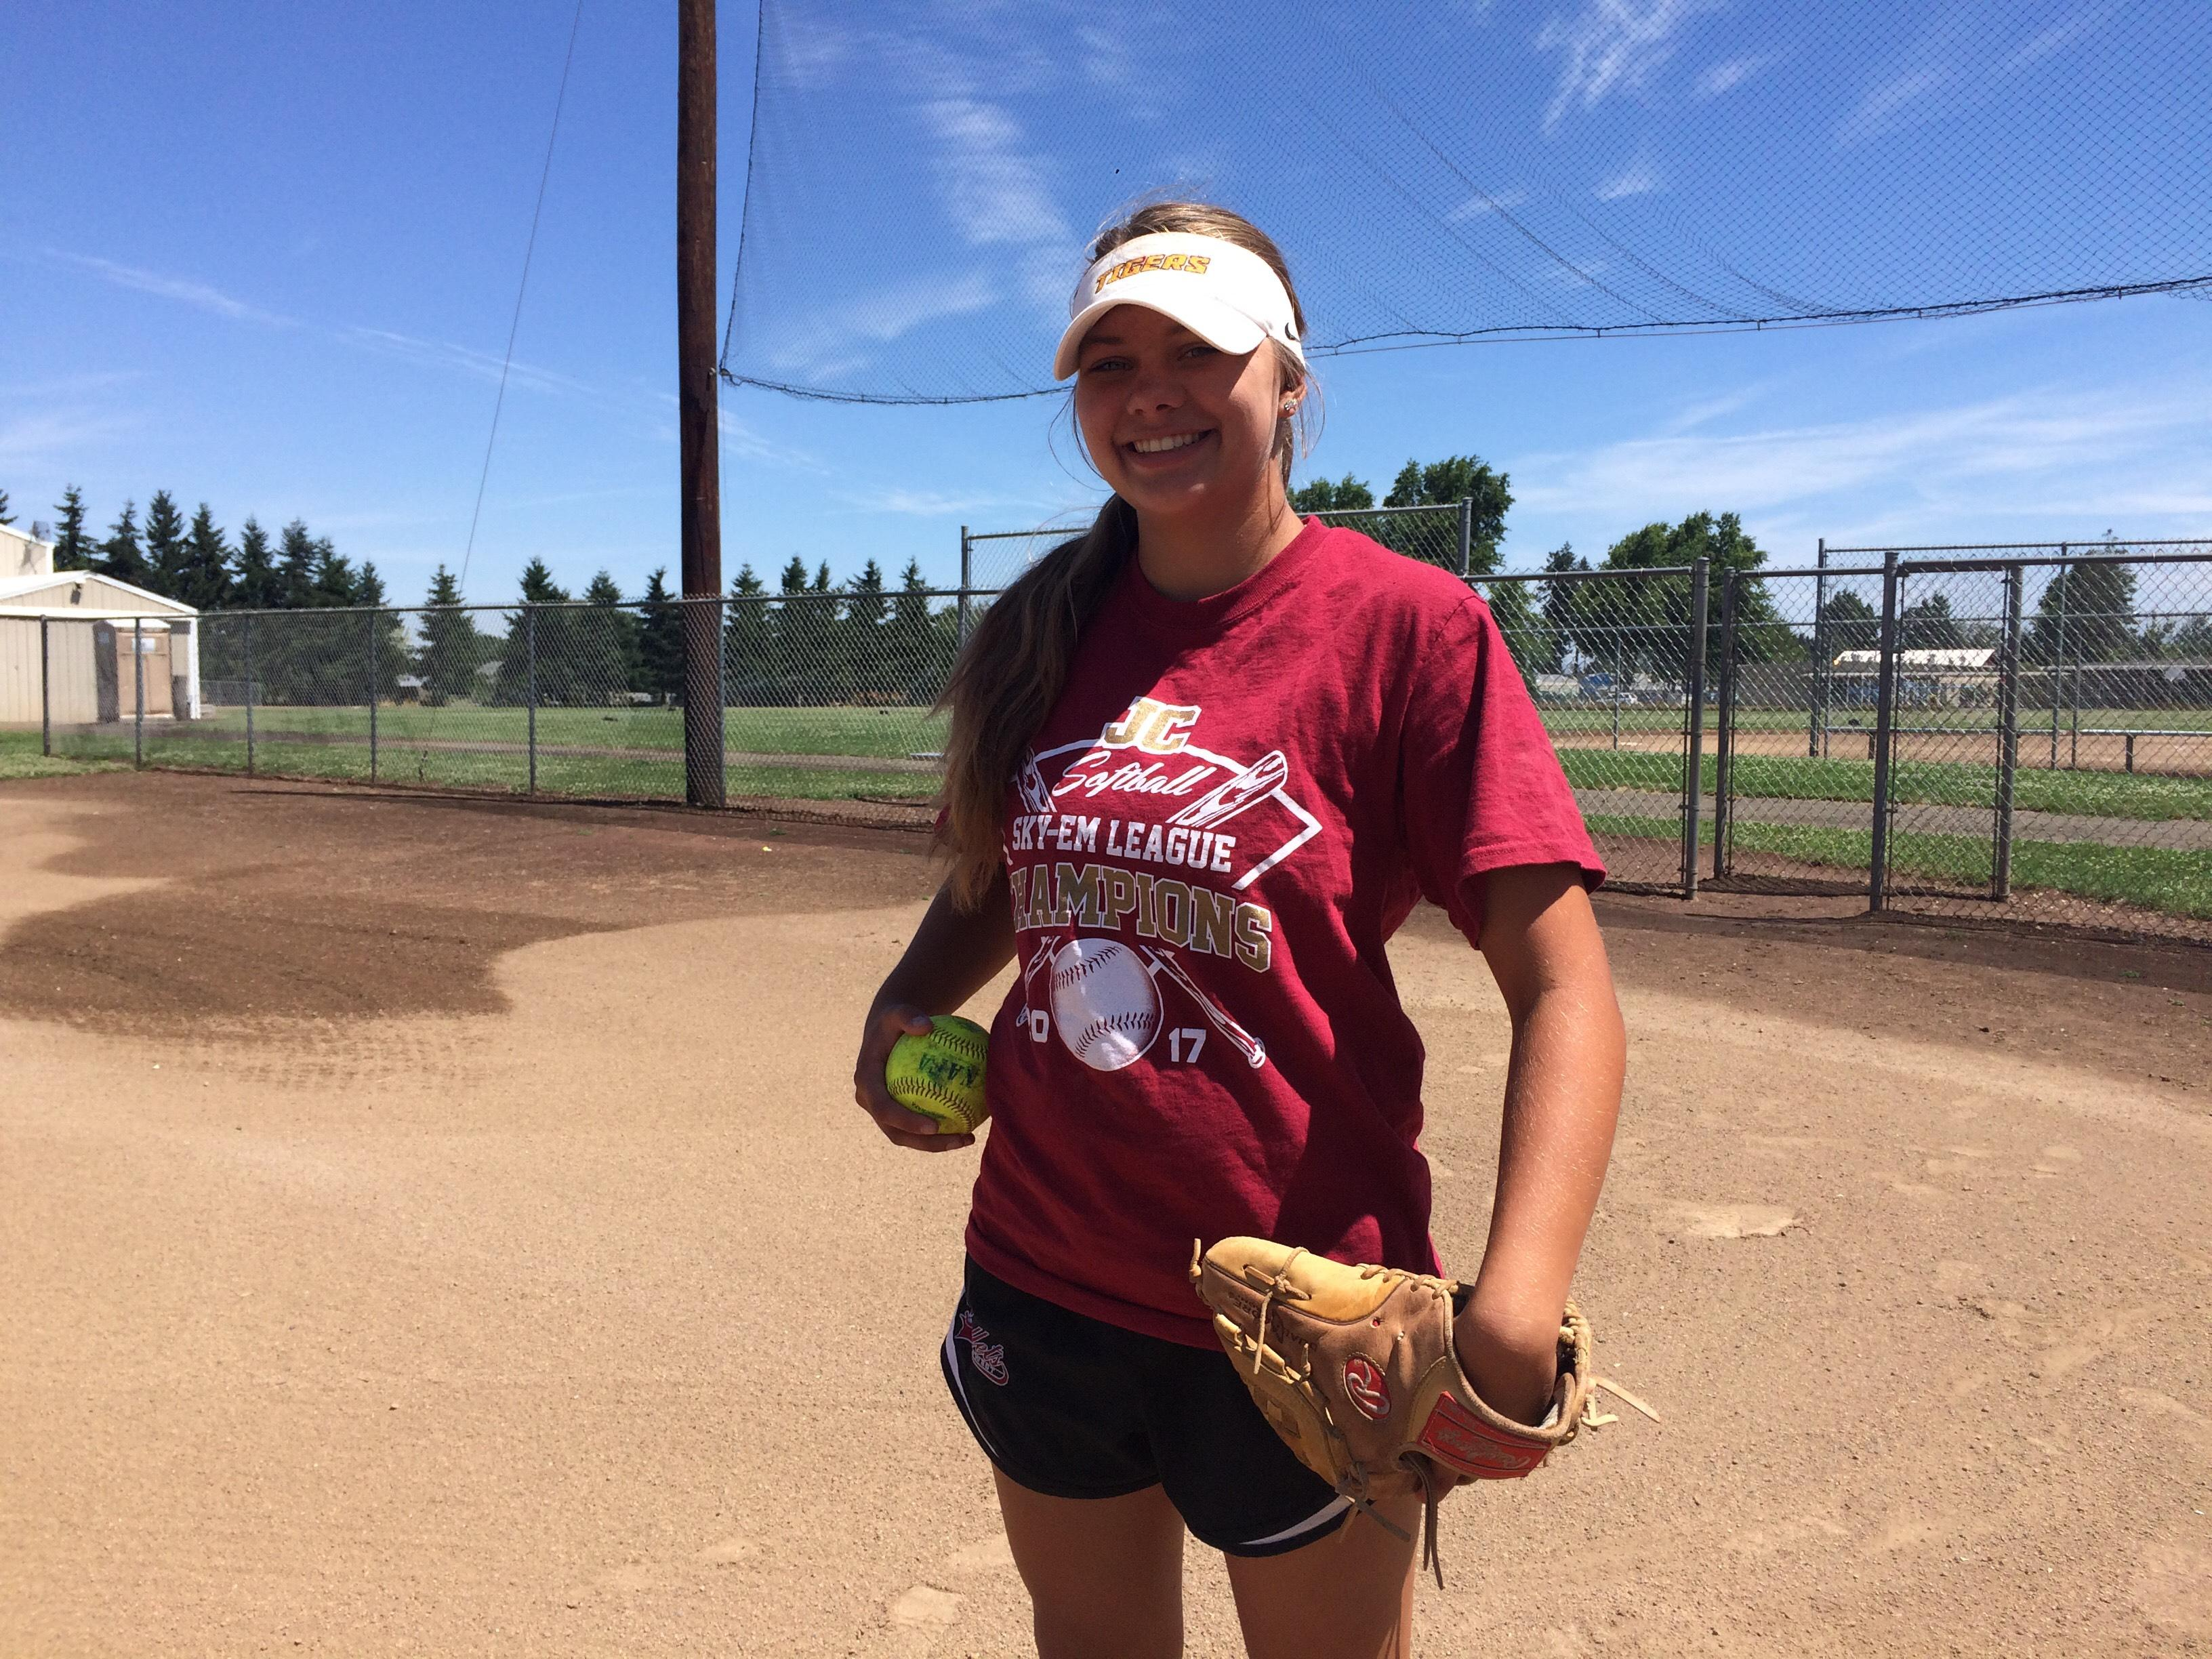 As a freshman, 15-year-old Jenna Kister was named conference pitcher of the year and second team all-state. But before high school, she struggled to stay on the field because of medical issues. (SBG)